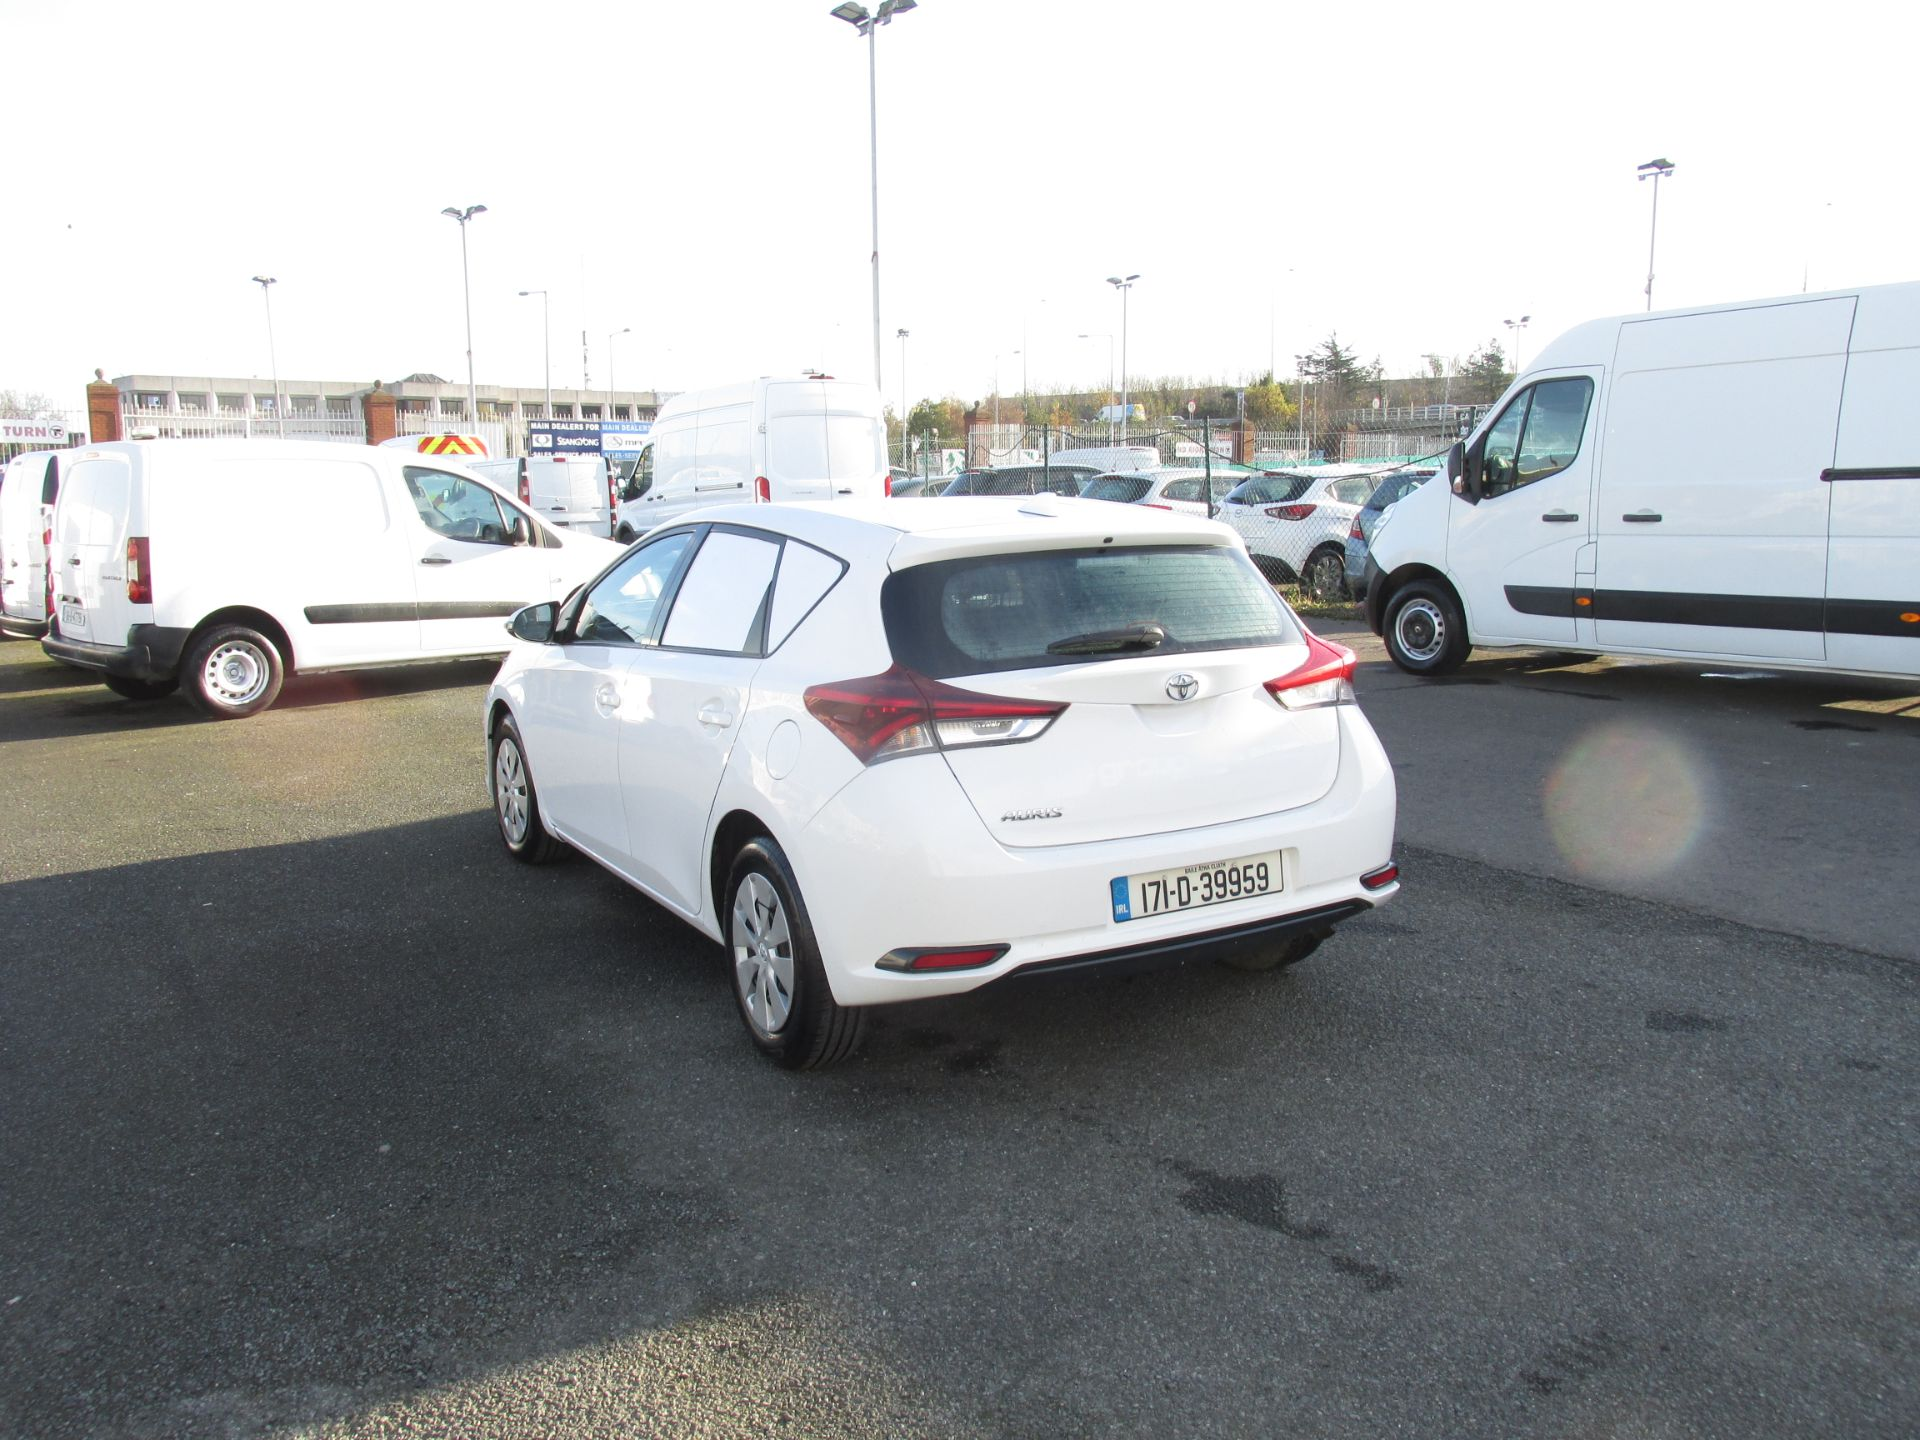 2017 Toyota Auris VAN 1.4 D4D Terra 4DR click and collect call sales for more info (171D39959) Image 5